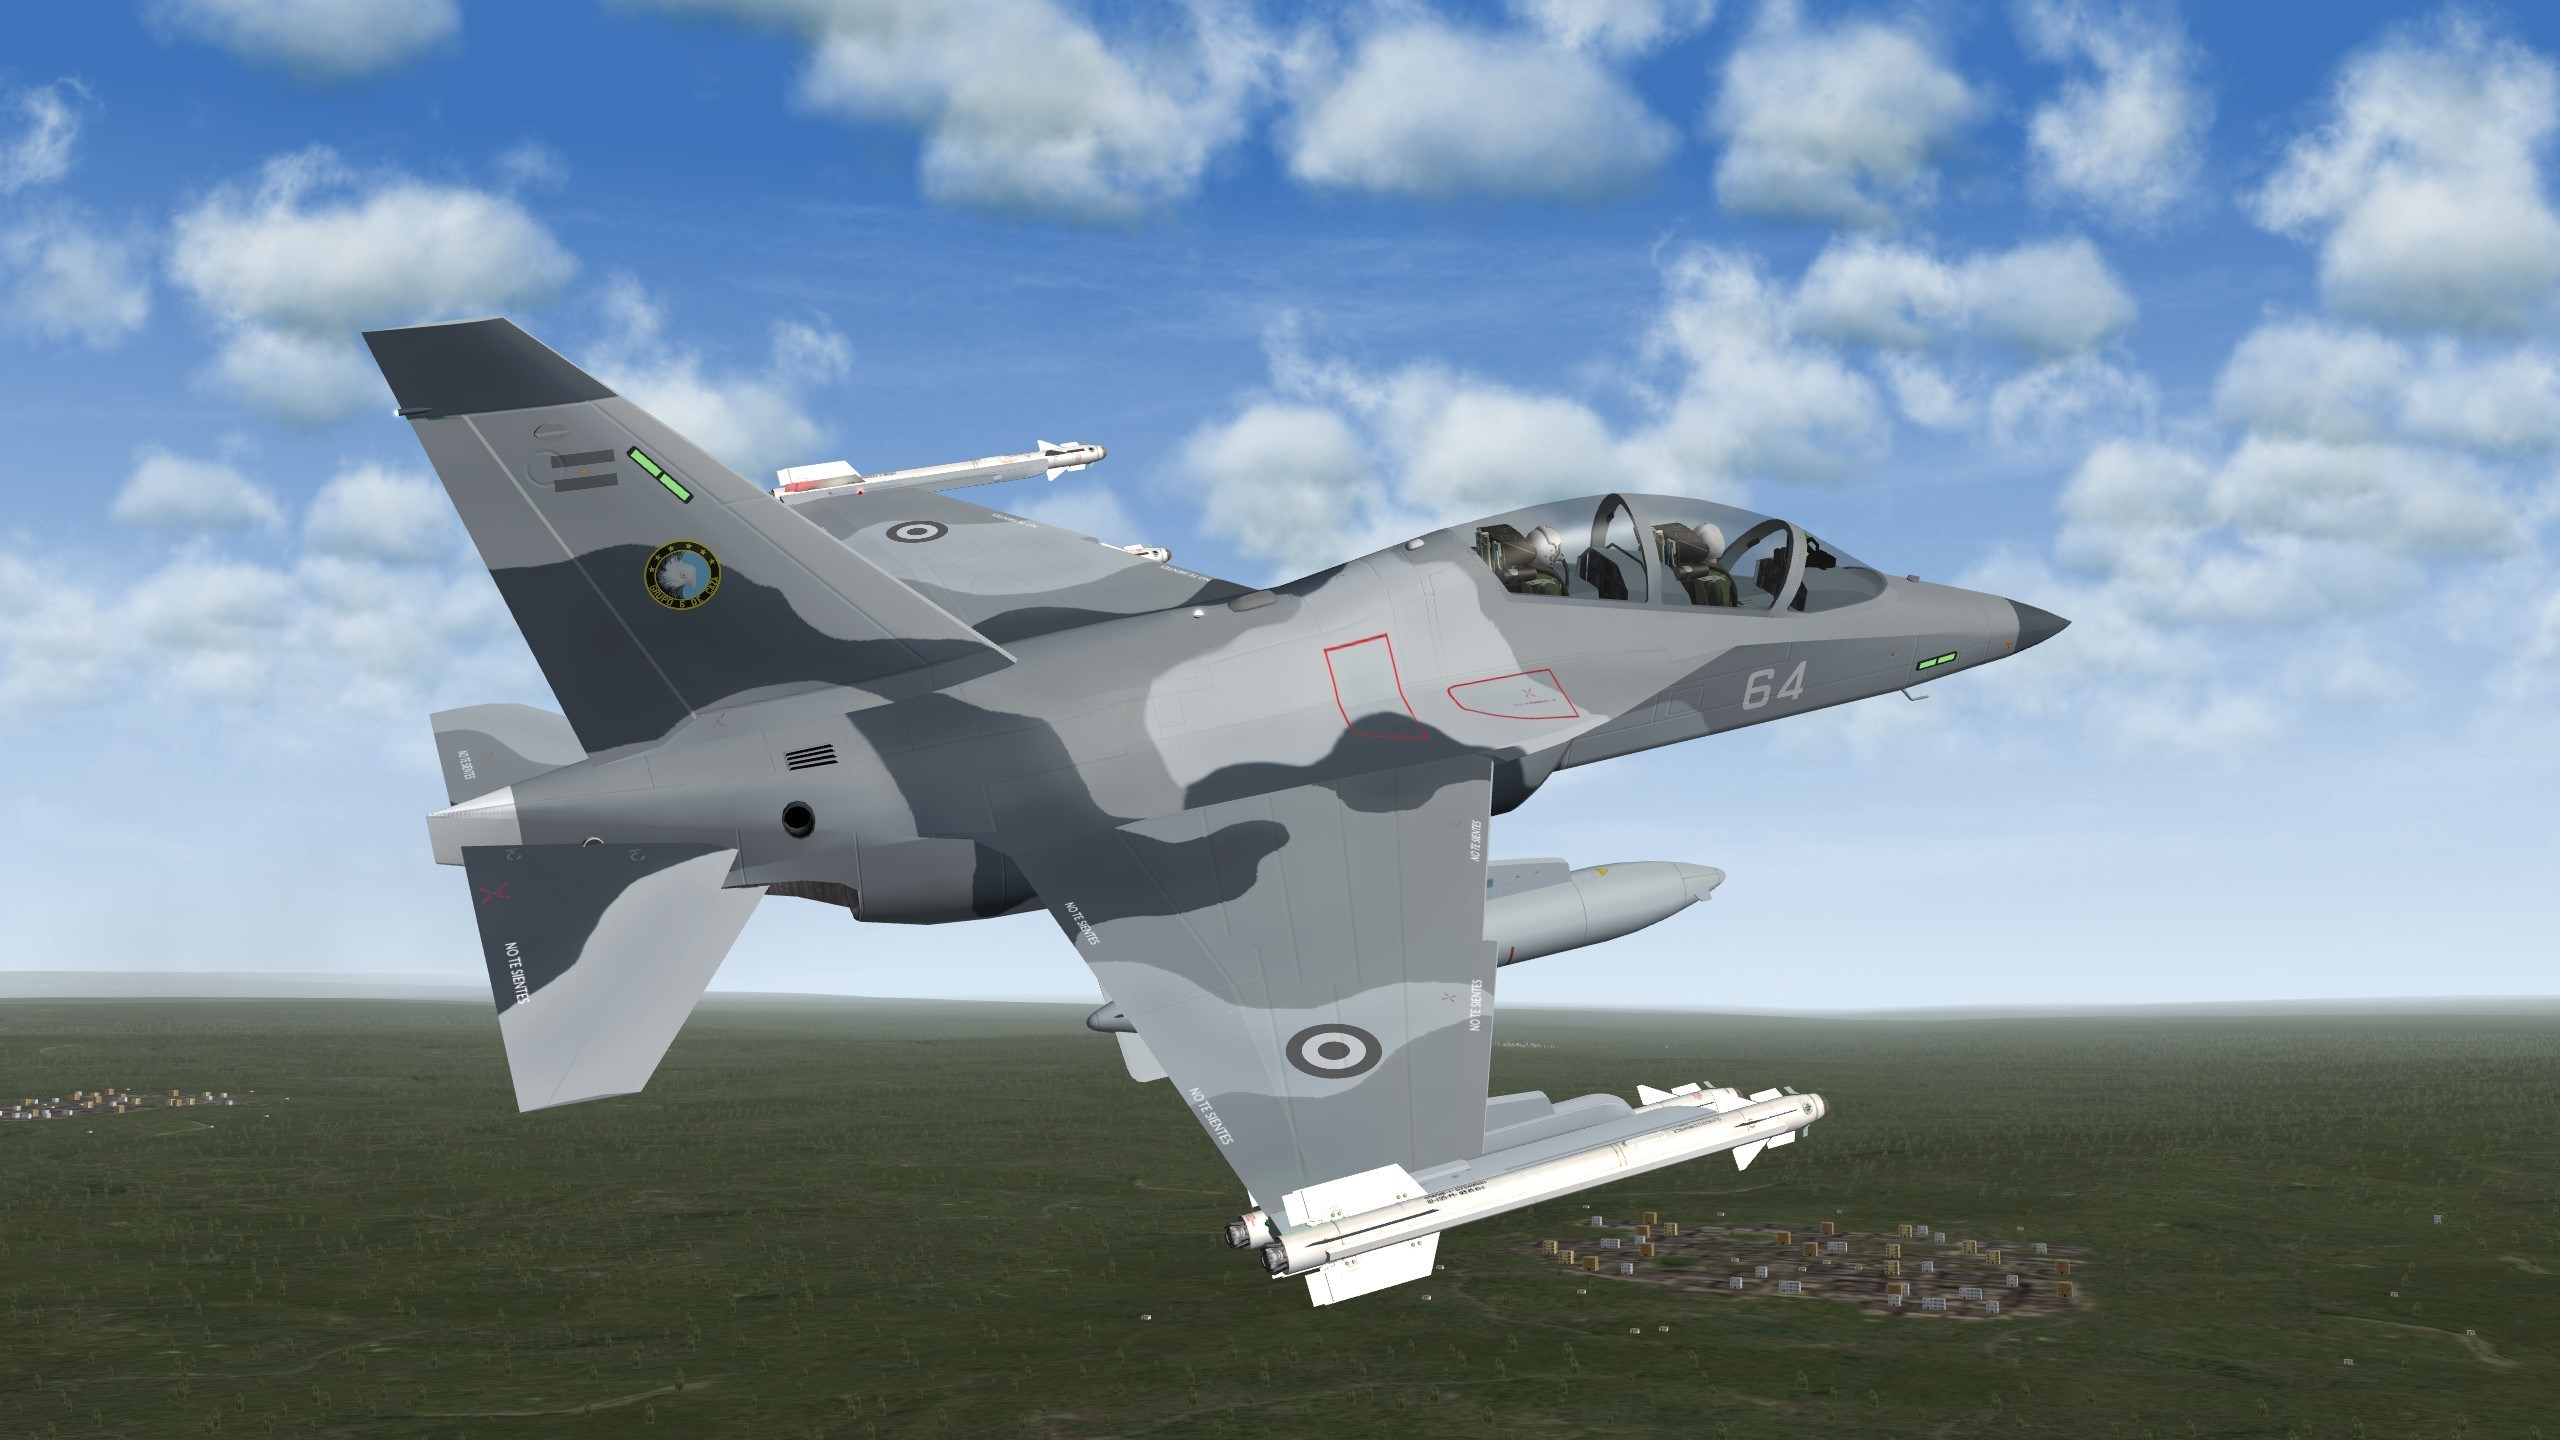 YAK-130 Skin Pack part 2 by UllyB 1.0.0